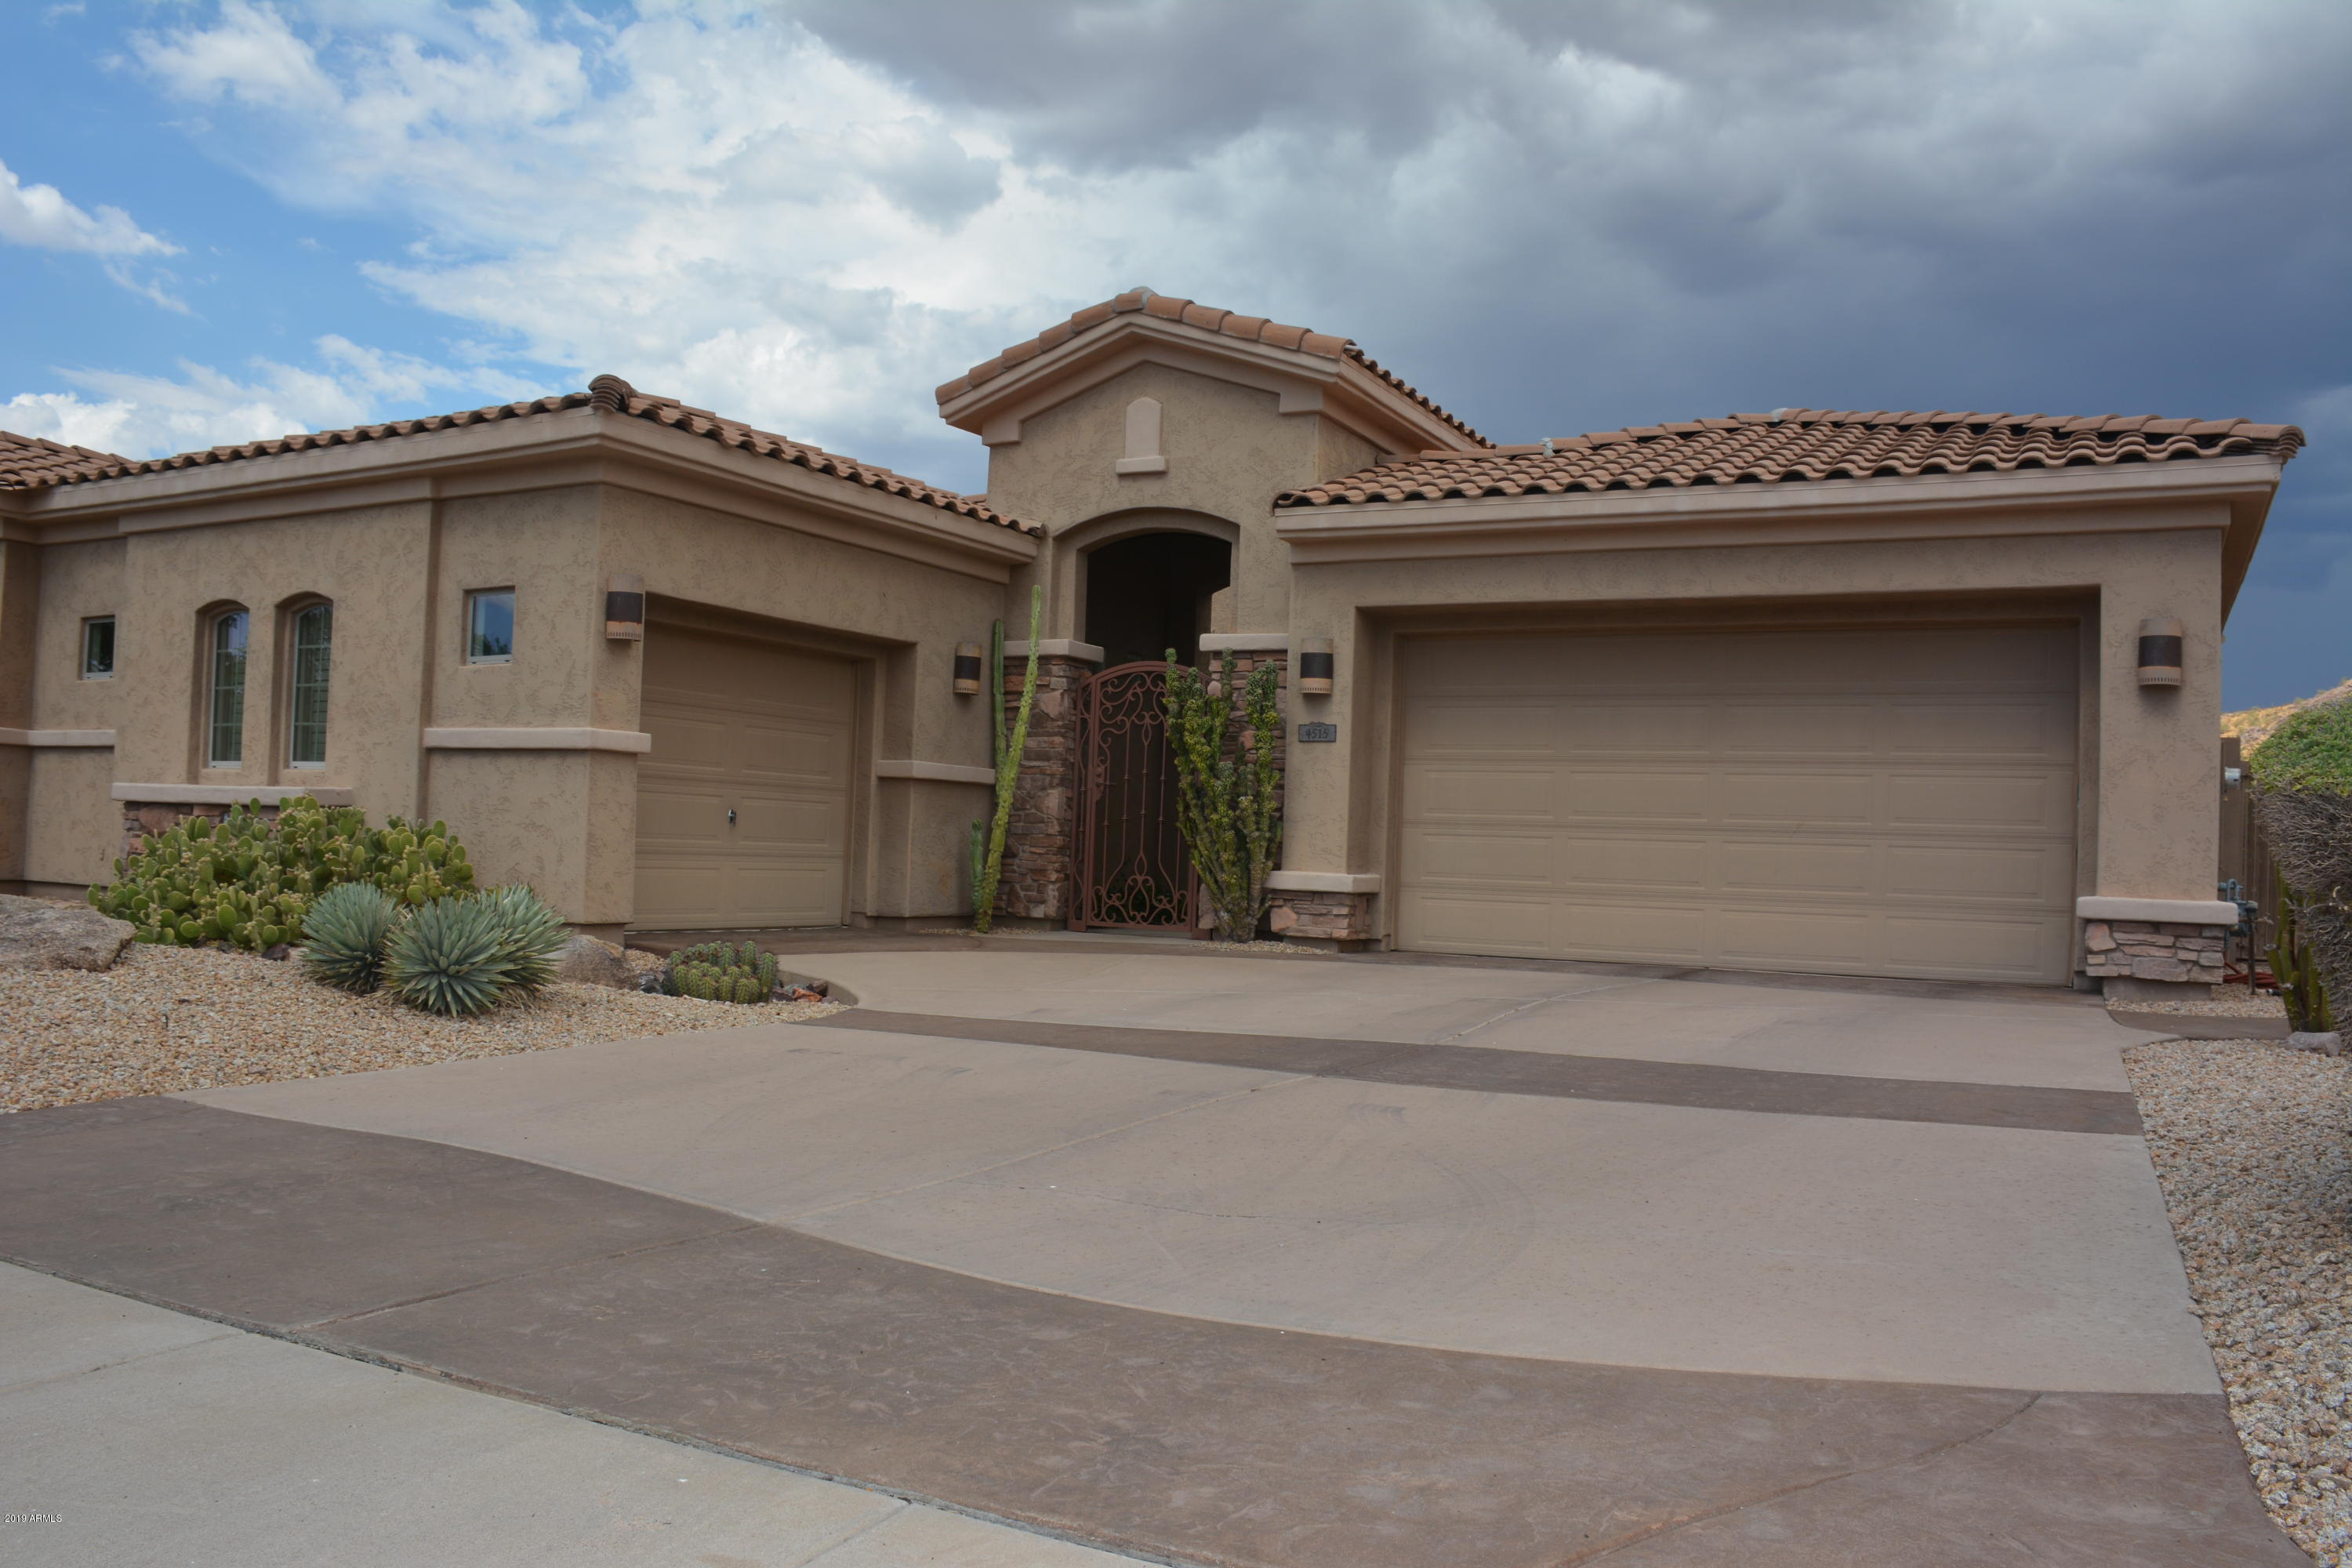 MLS 5959530 4515 S SALVIA Drive, Gold Canyon, AZ 85118 Gold Canyon AZ Superstition Foothills